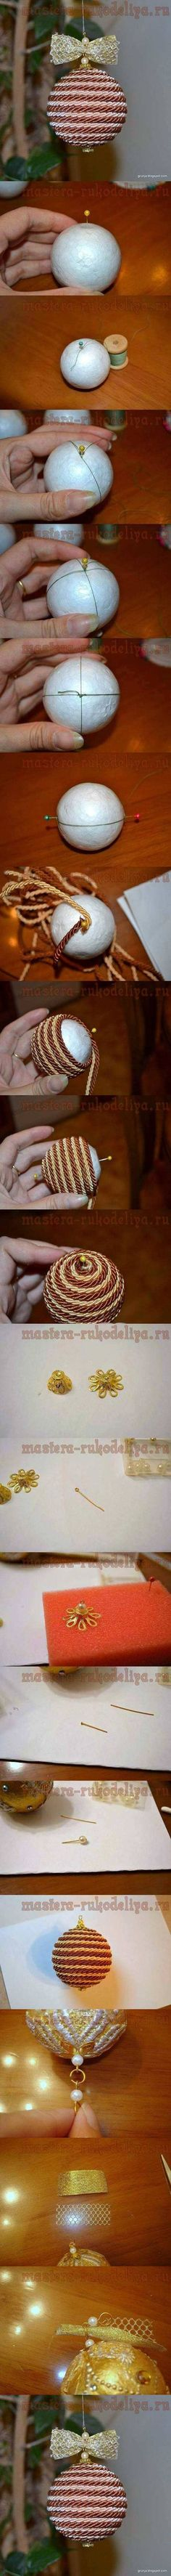 DIY Ball of String DIY Projects / UsefulDIY.com on imgfave